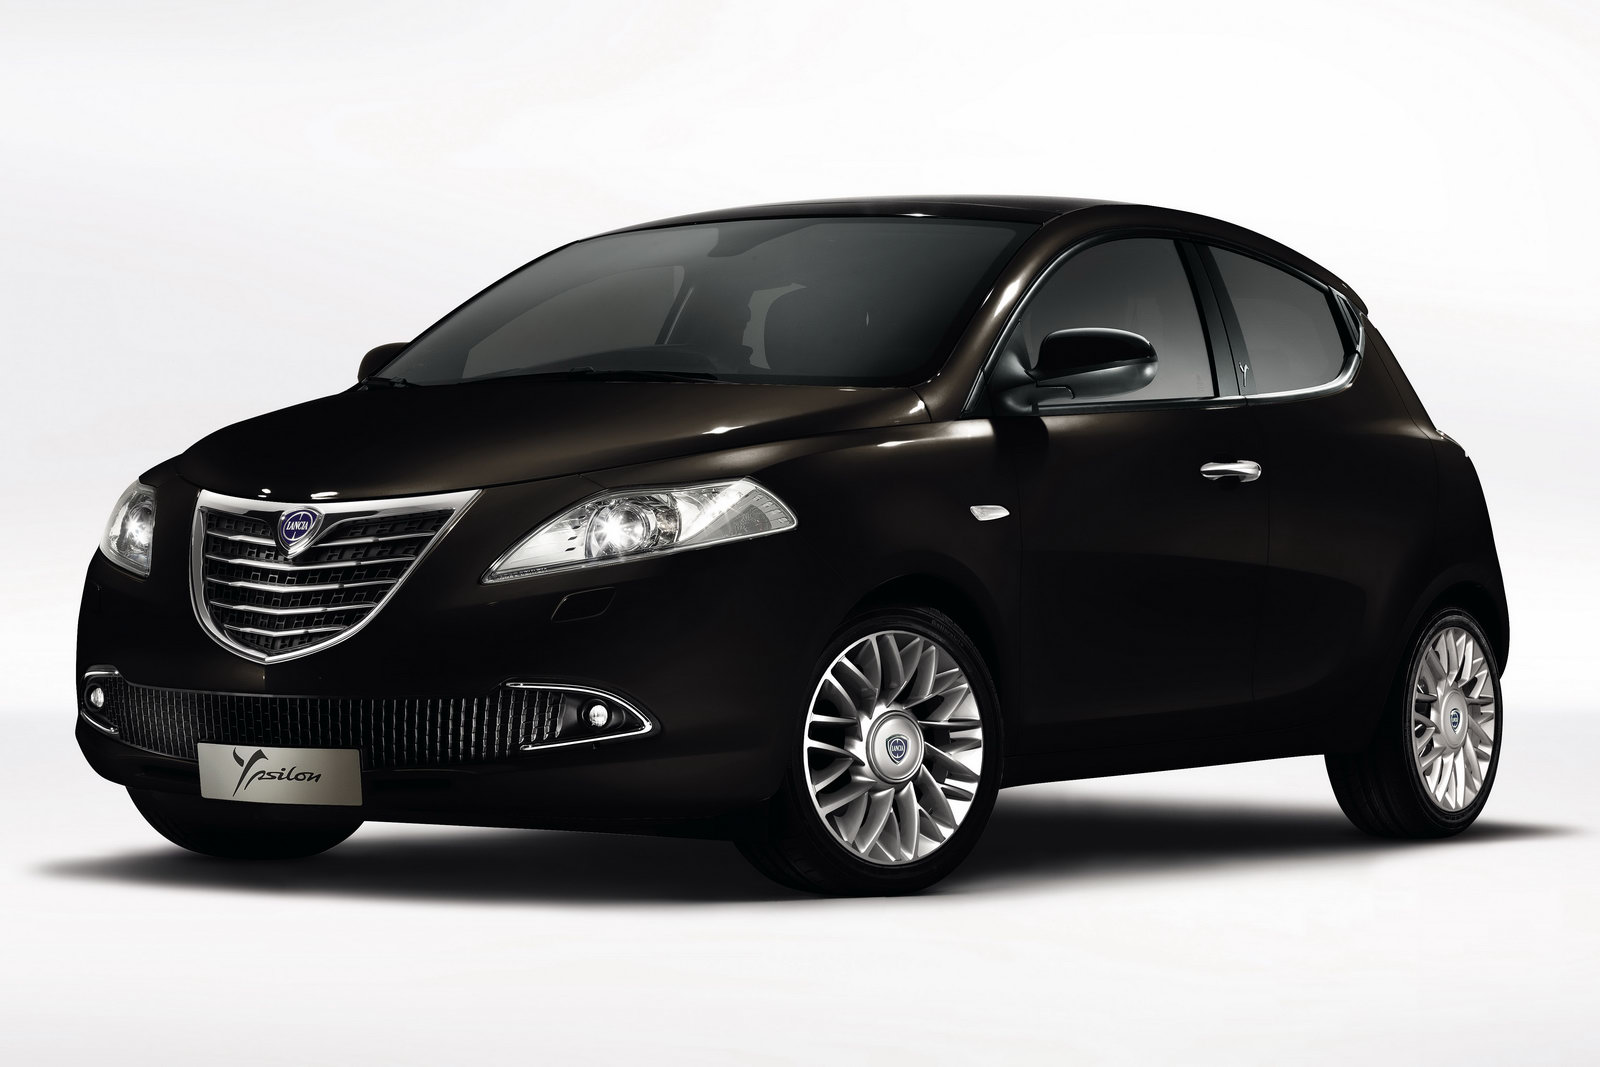 car design scoop scoop et dernieres infos automobile nouvelle lancia ypsilon 4 de 2011. Black Bedroom Furniture Sets. Home Design Ideas